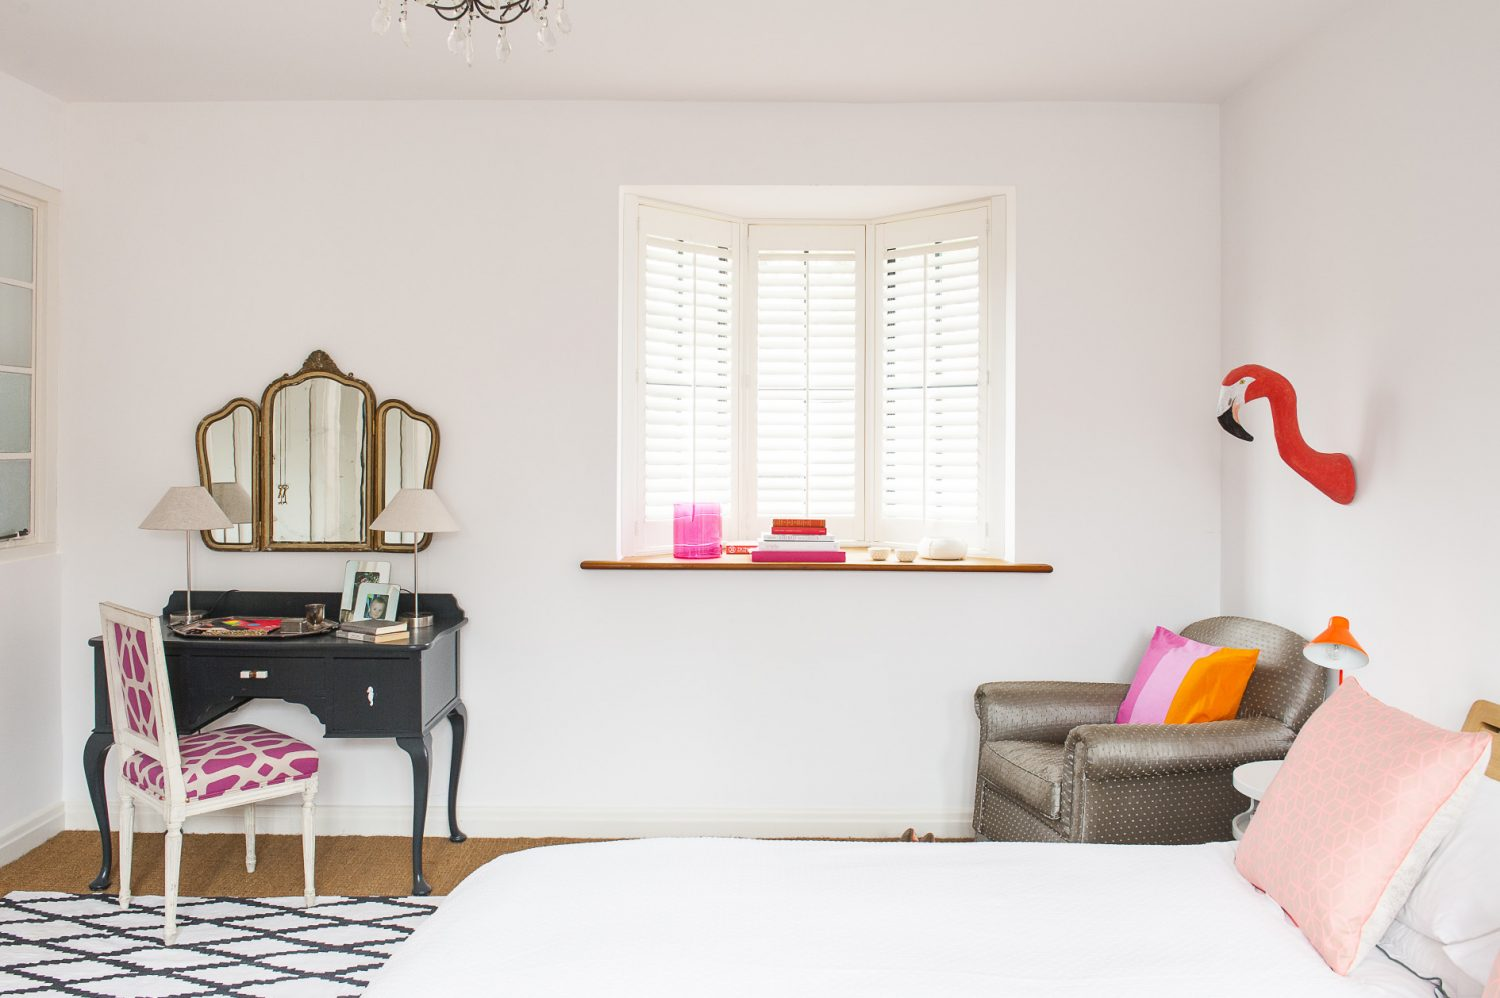 Bright dashes of colour and touches of humour, such as the flamingo's head protruding from the wall, prevent the rooms feeling at all austere – despite the liberal use of white paint on the walls